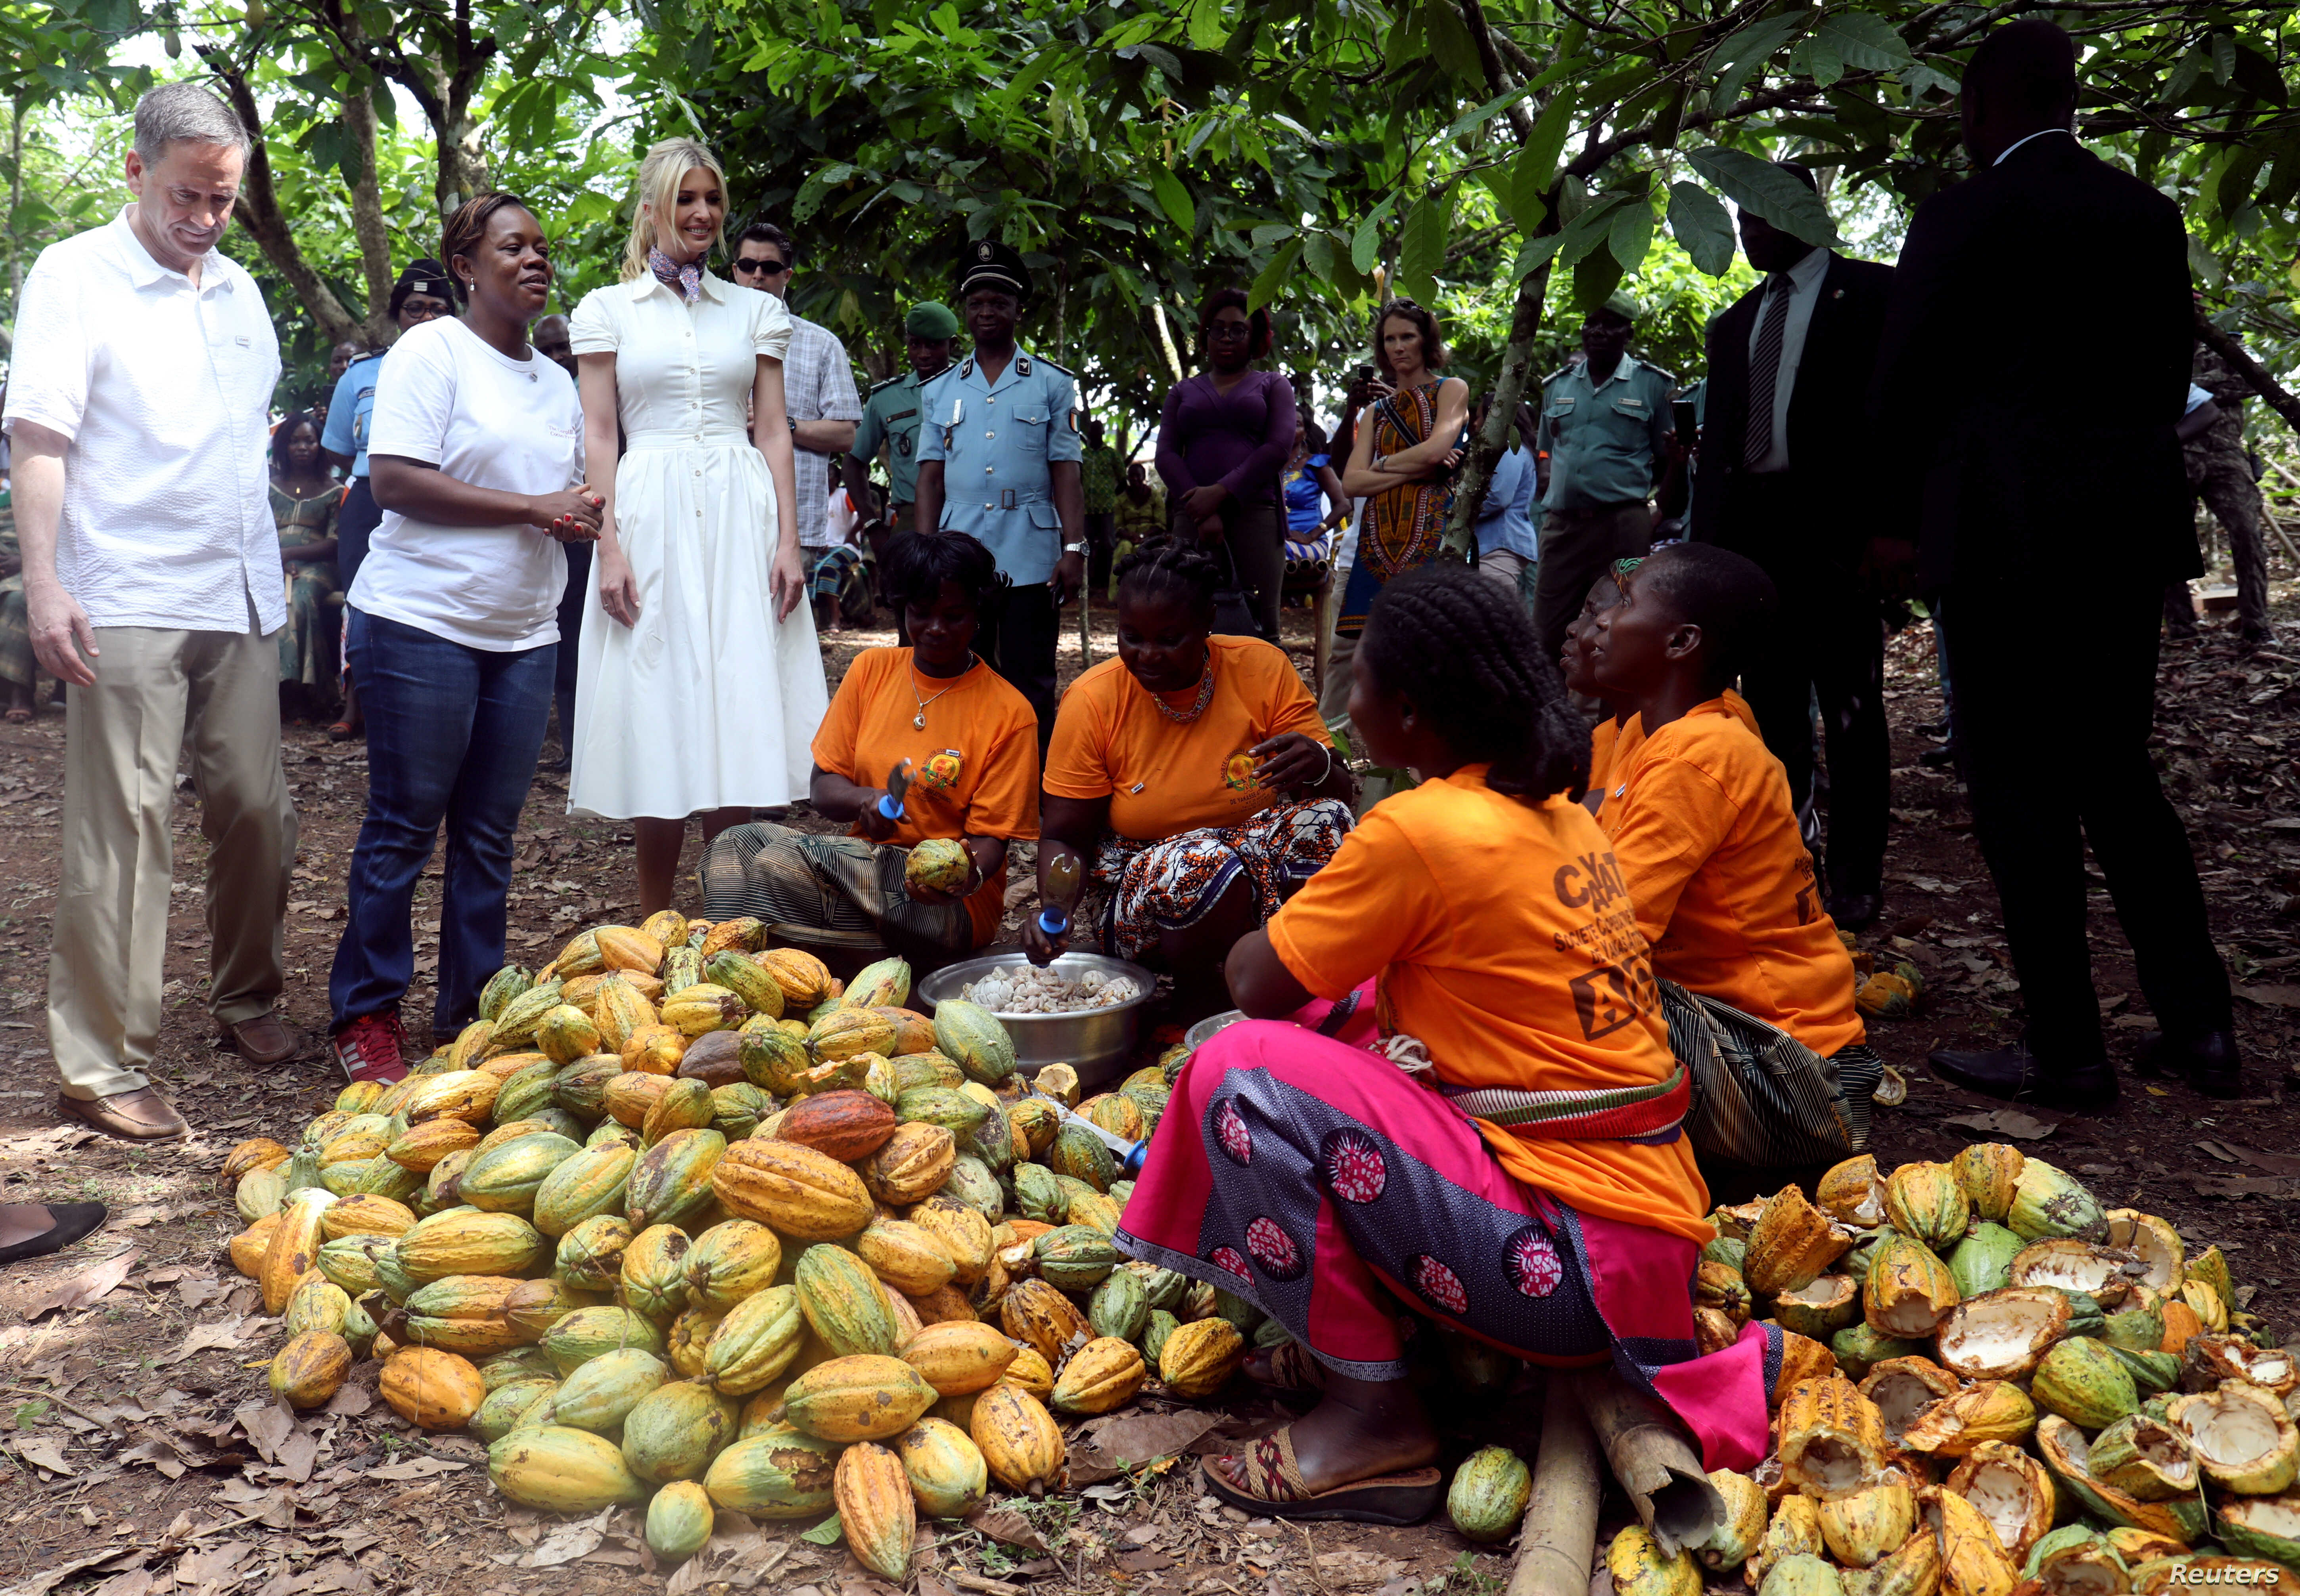 White House Advisor Ivanka Trump and U.S. Agency for International Development (USAID) Administrator Mark Green visit women entrepreneurs, at the demonstration cocoa farm in Adzope, Ivory Coast, Apr. 17, 2019.